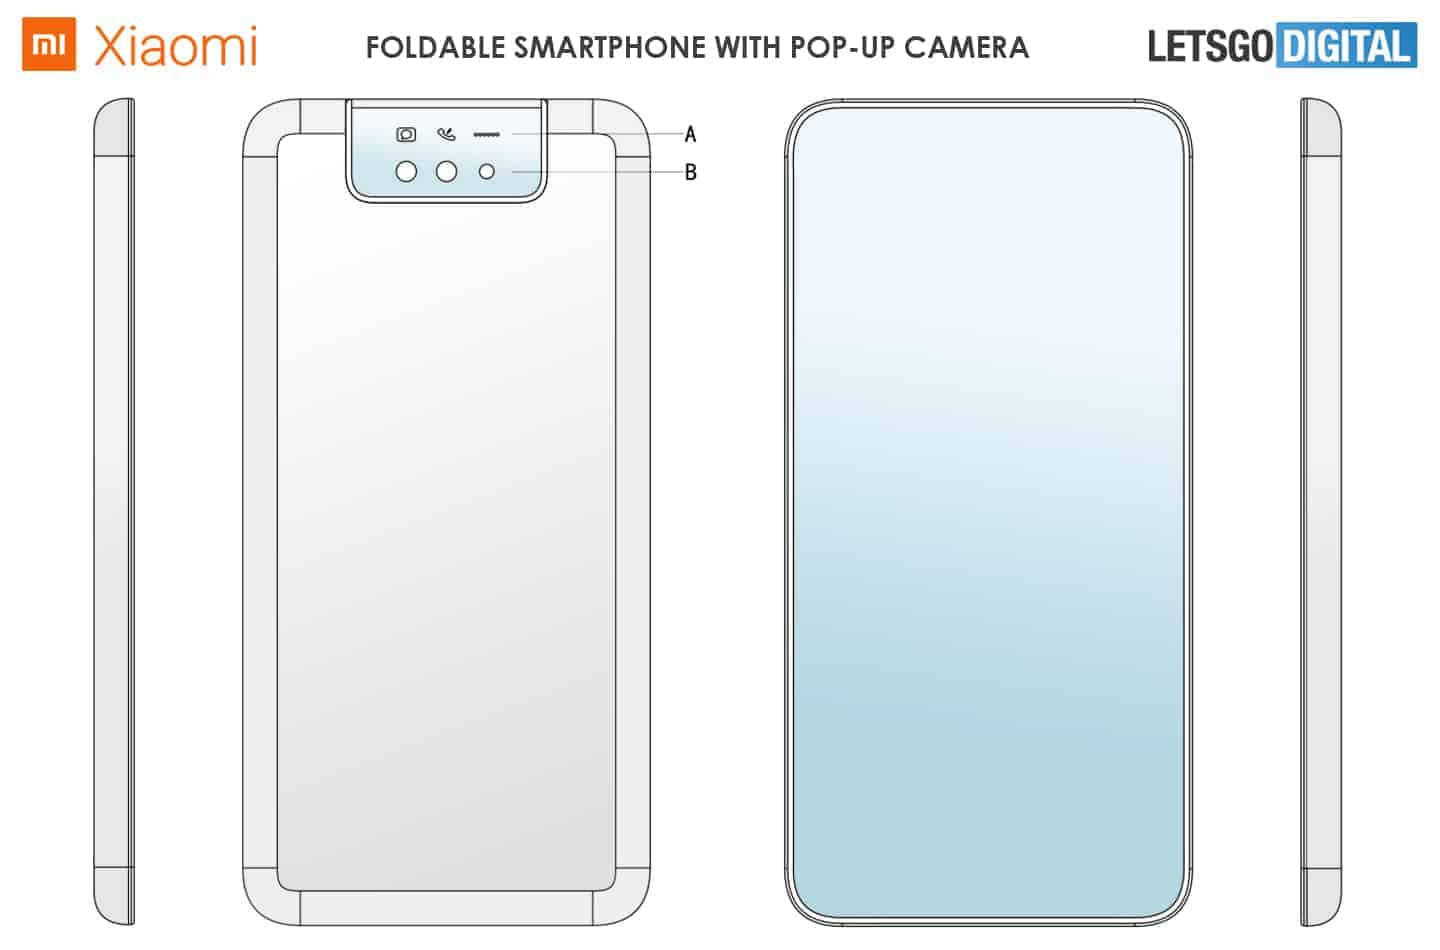 Xiaomi clamshell foldable with pop up camera image 2